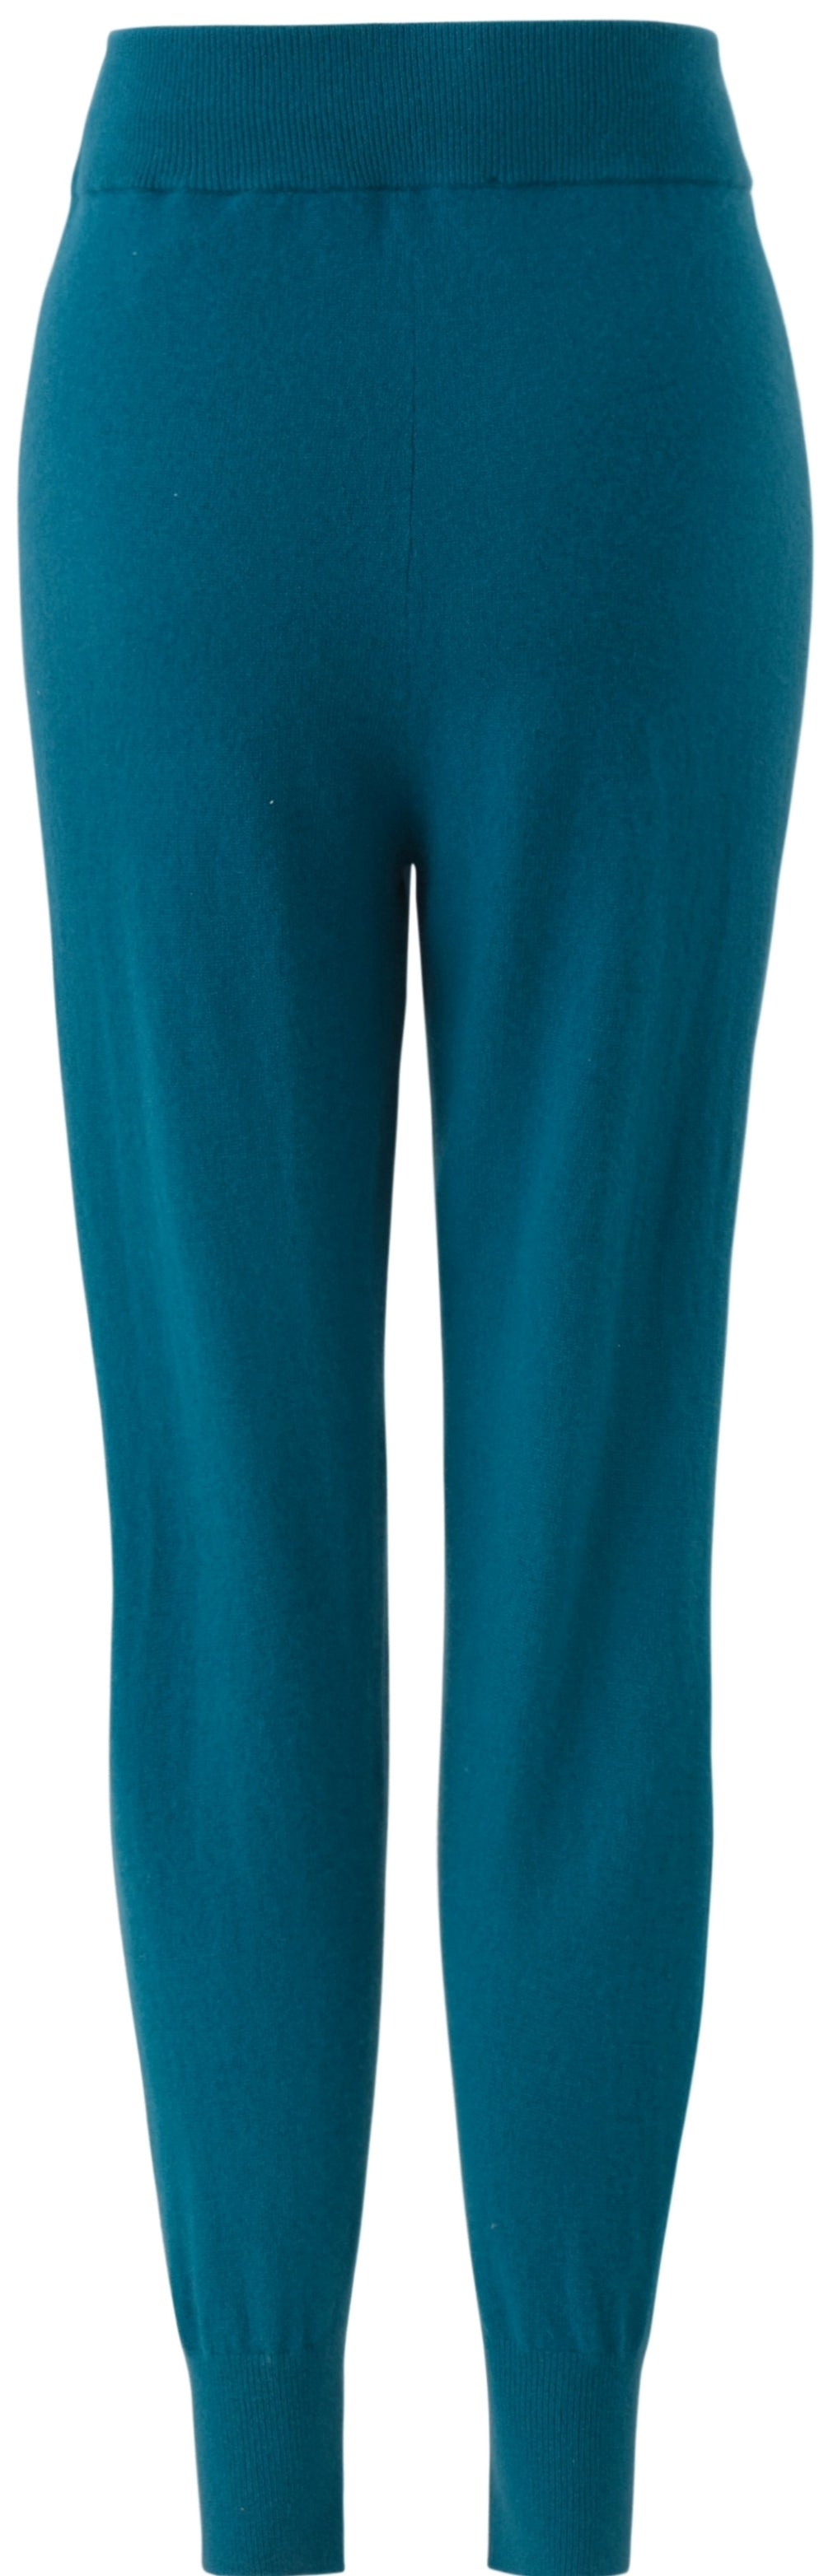 Inari Women's petrol cashmere pants - back side - 100% high-quality cashmere - Inari-clothing.fi